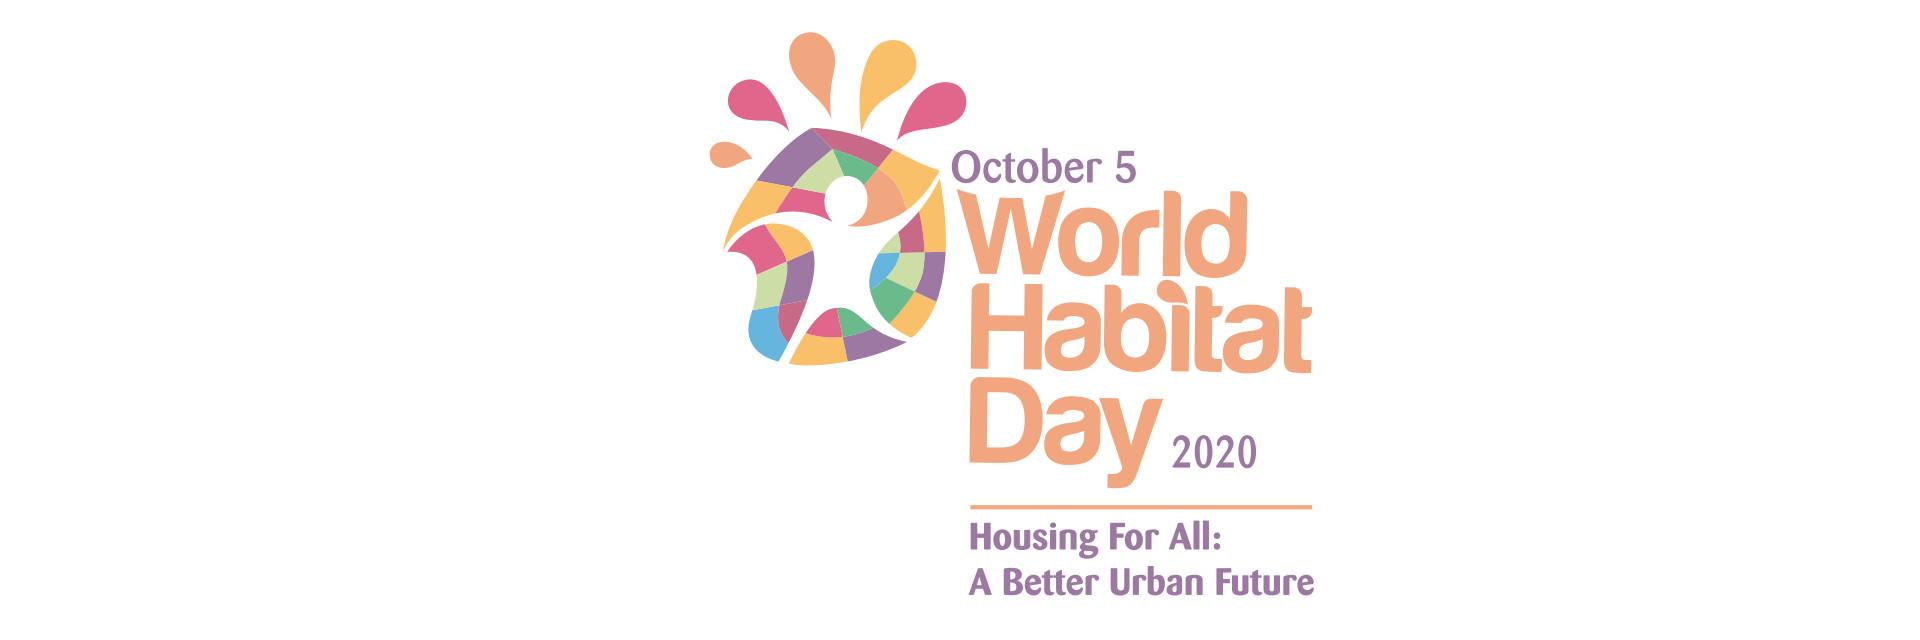 2020 World Habitat Day - Housing For All: A Better Urban Future